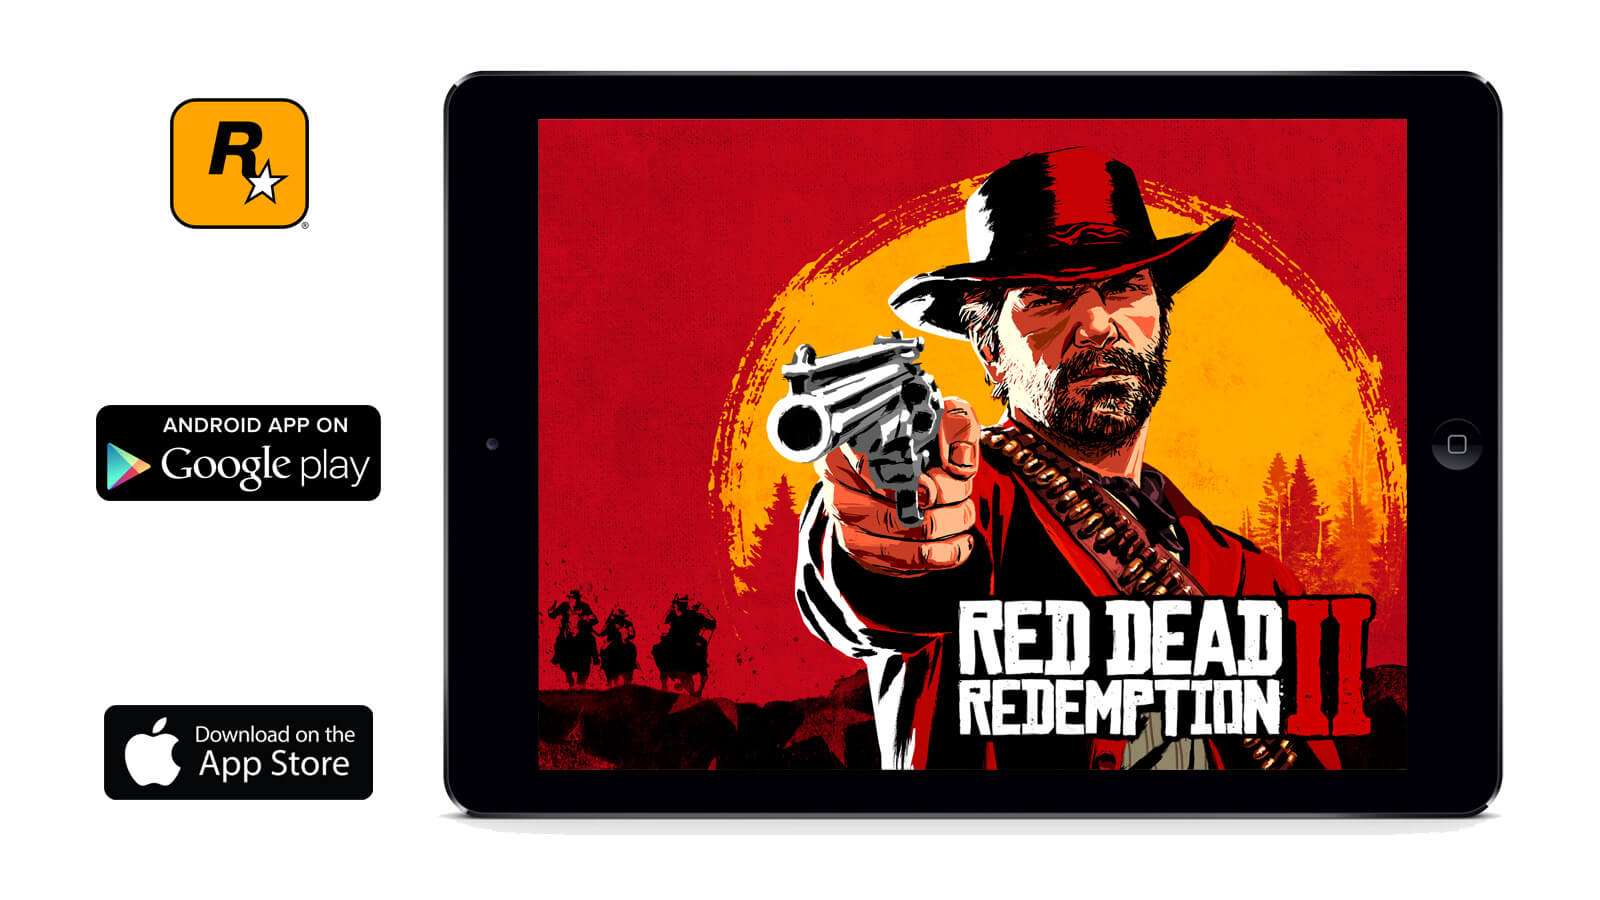 Red Dead Redemption 2 Companion App for Mobile - Gameslaught